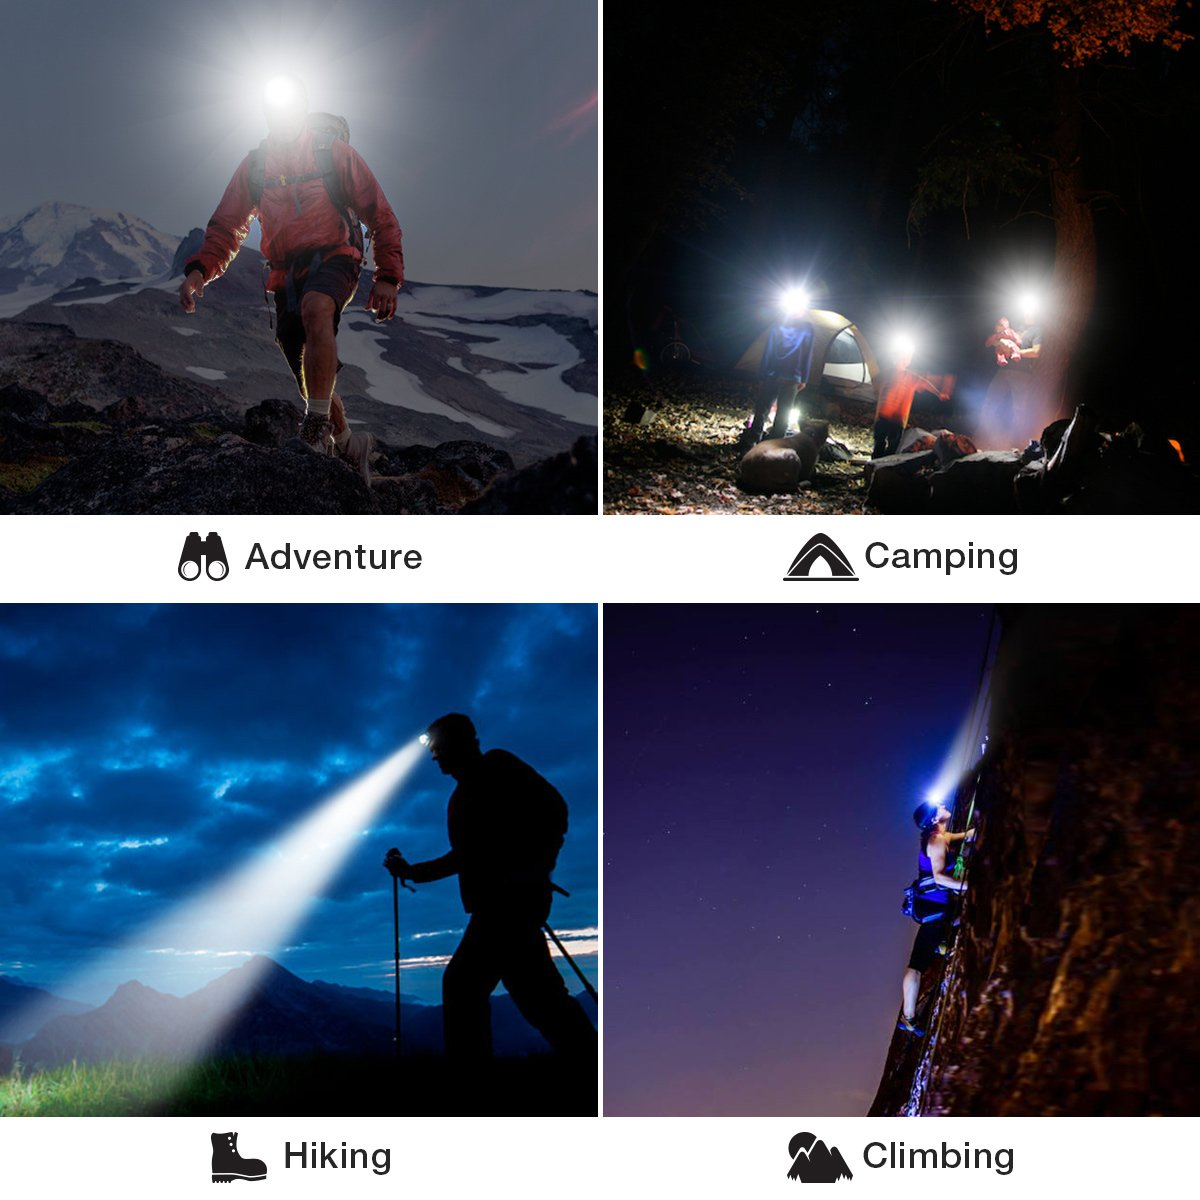 Solar Rechargeable LED Headlamp with Power Bank,SGODDE Super Bright 3 Modes Waterproof Head torch Headlight,Adjustable Elastic Headband for Outdoor Hiking Camping Fishing Cycling Running Walking by SGODDE (Image #8)